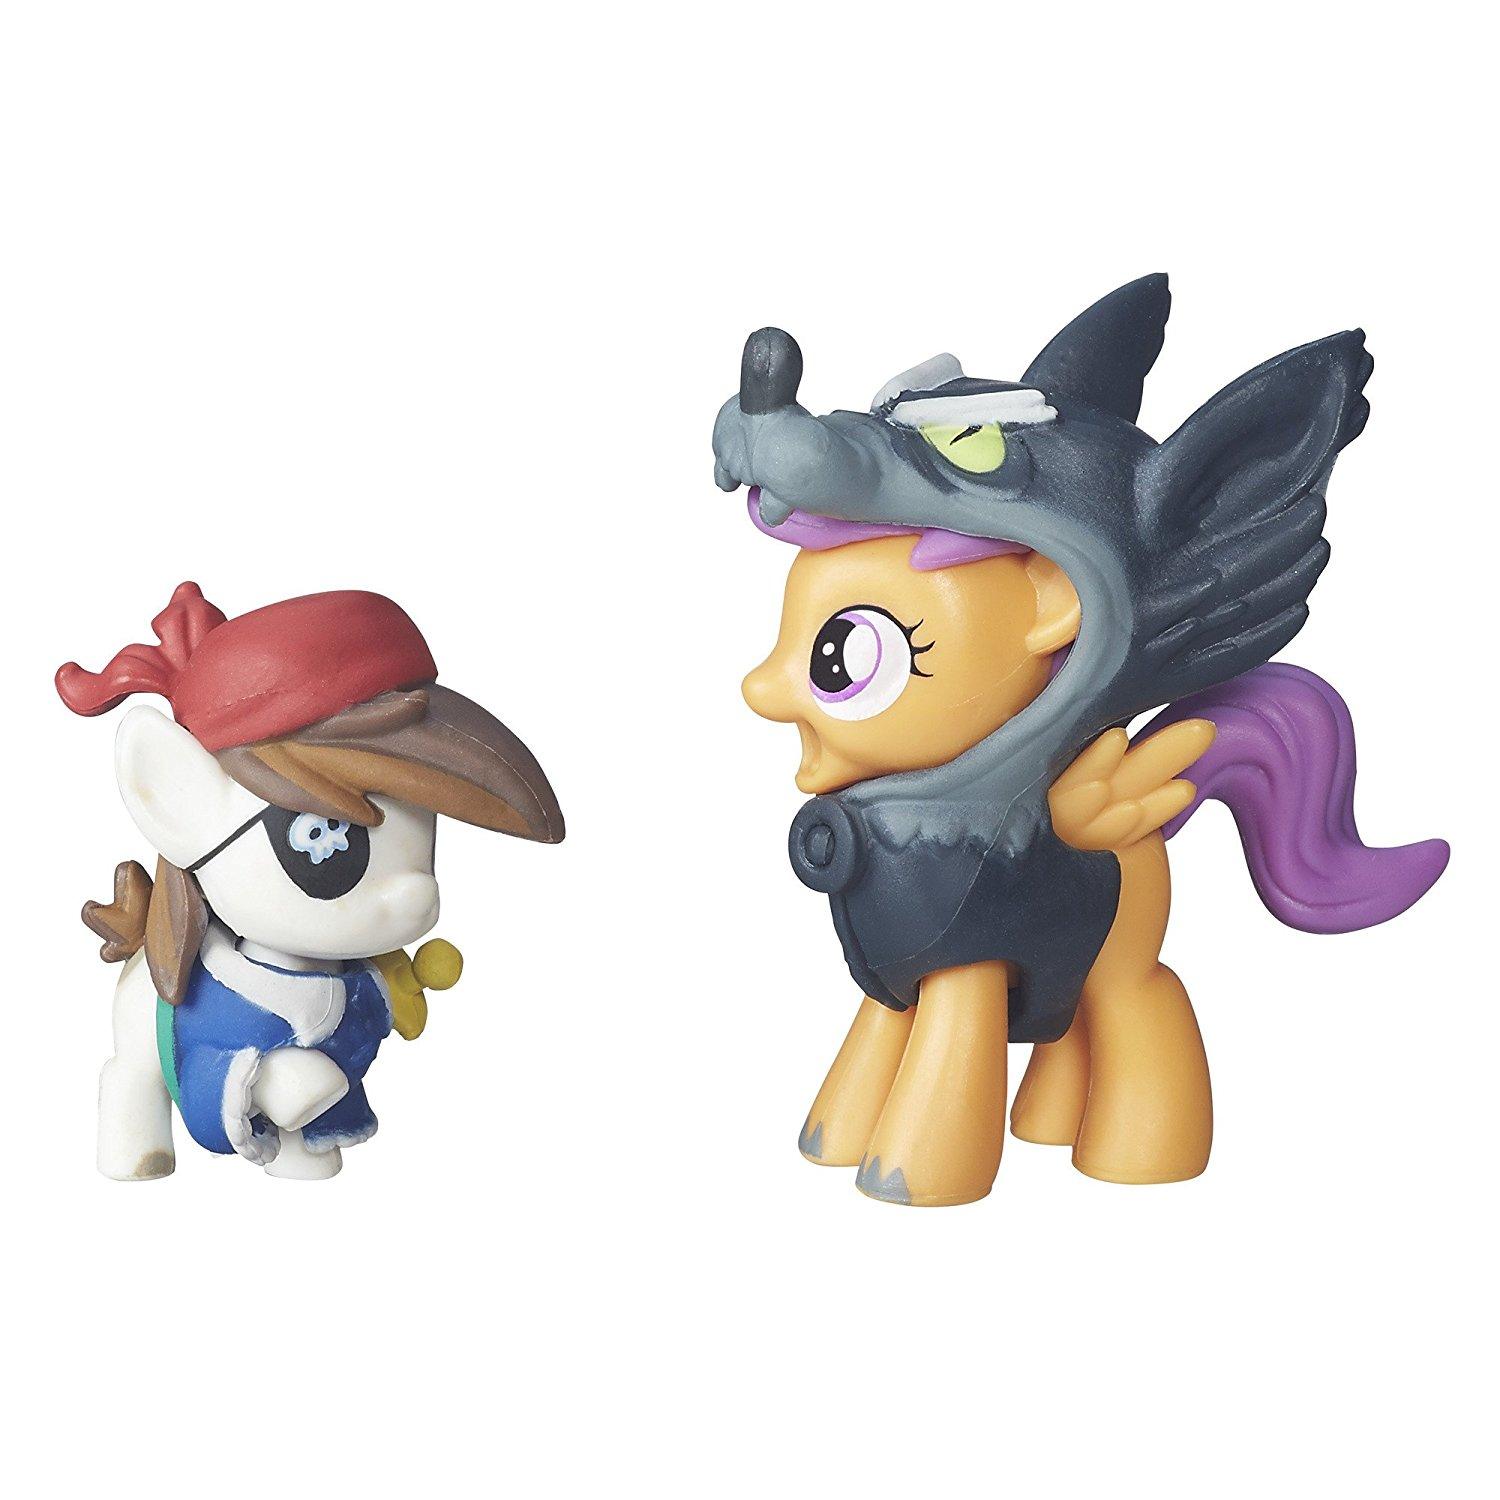 Cheap Scootaloo My Little Pony Find Scootaloo My Little Pony Deals On Line At Alibaba Com Edit descriptions of this character. cheap scootaloo my little pony find